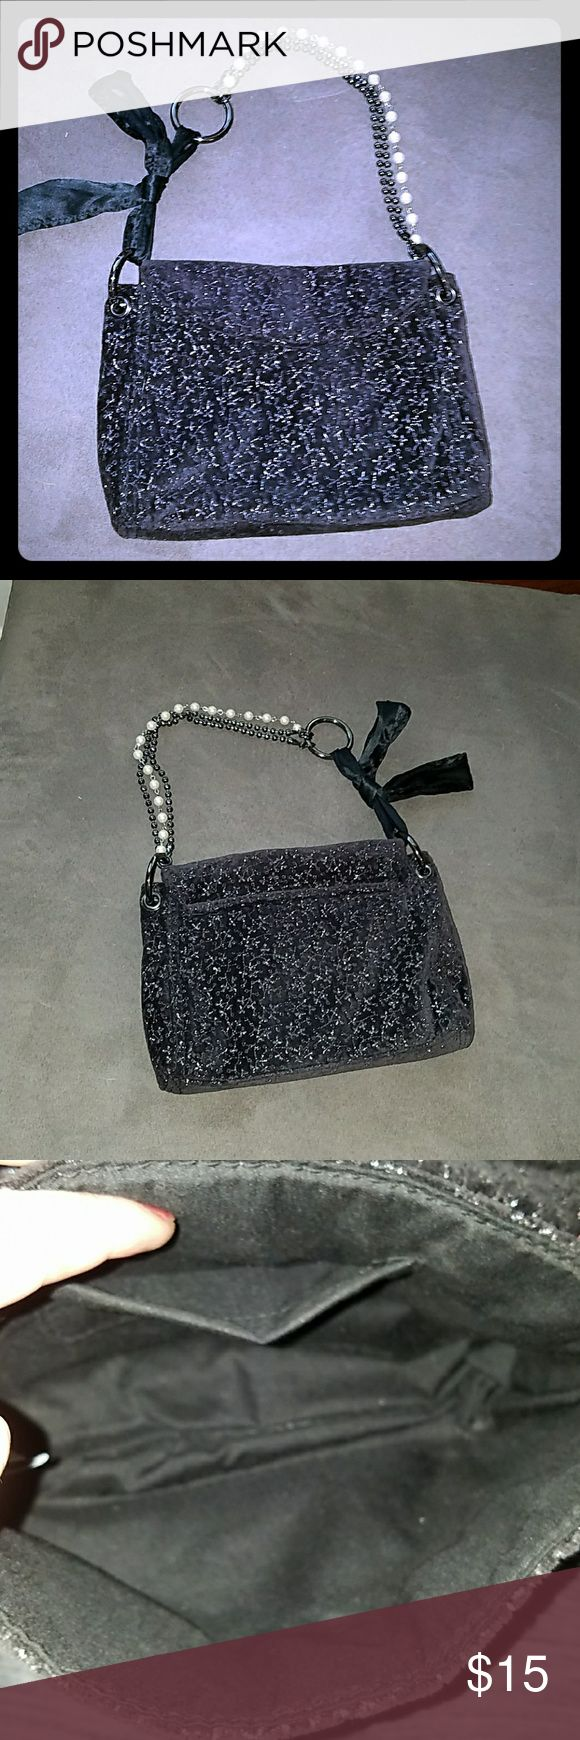 *SALE* EUC Small Black & Silver GAP Purse EUC small black and silver GAP purse with a beaded strap. Also has a black bow accent on the strap. Magnetic closure with one small side pocket on the inside. 9 in x 6 in. with a 7 in. handle drop GAP Bags